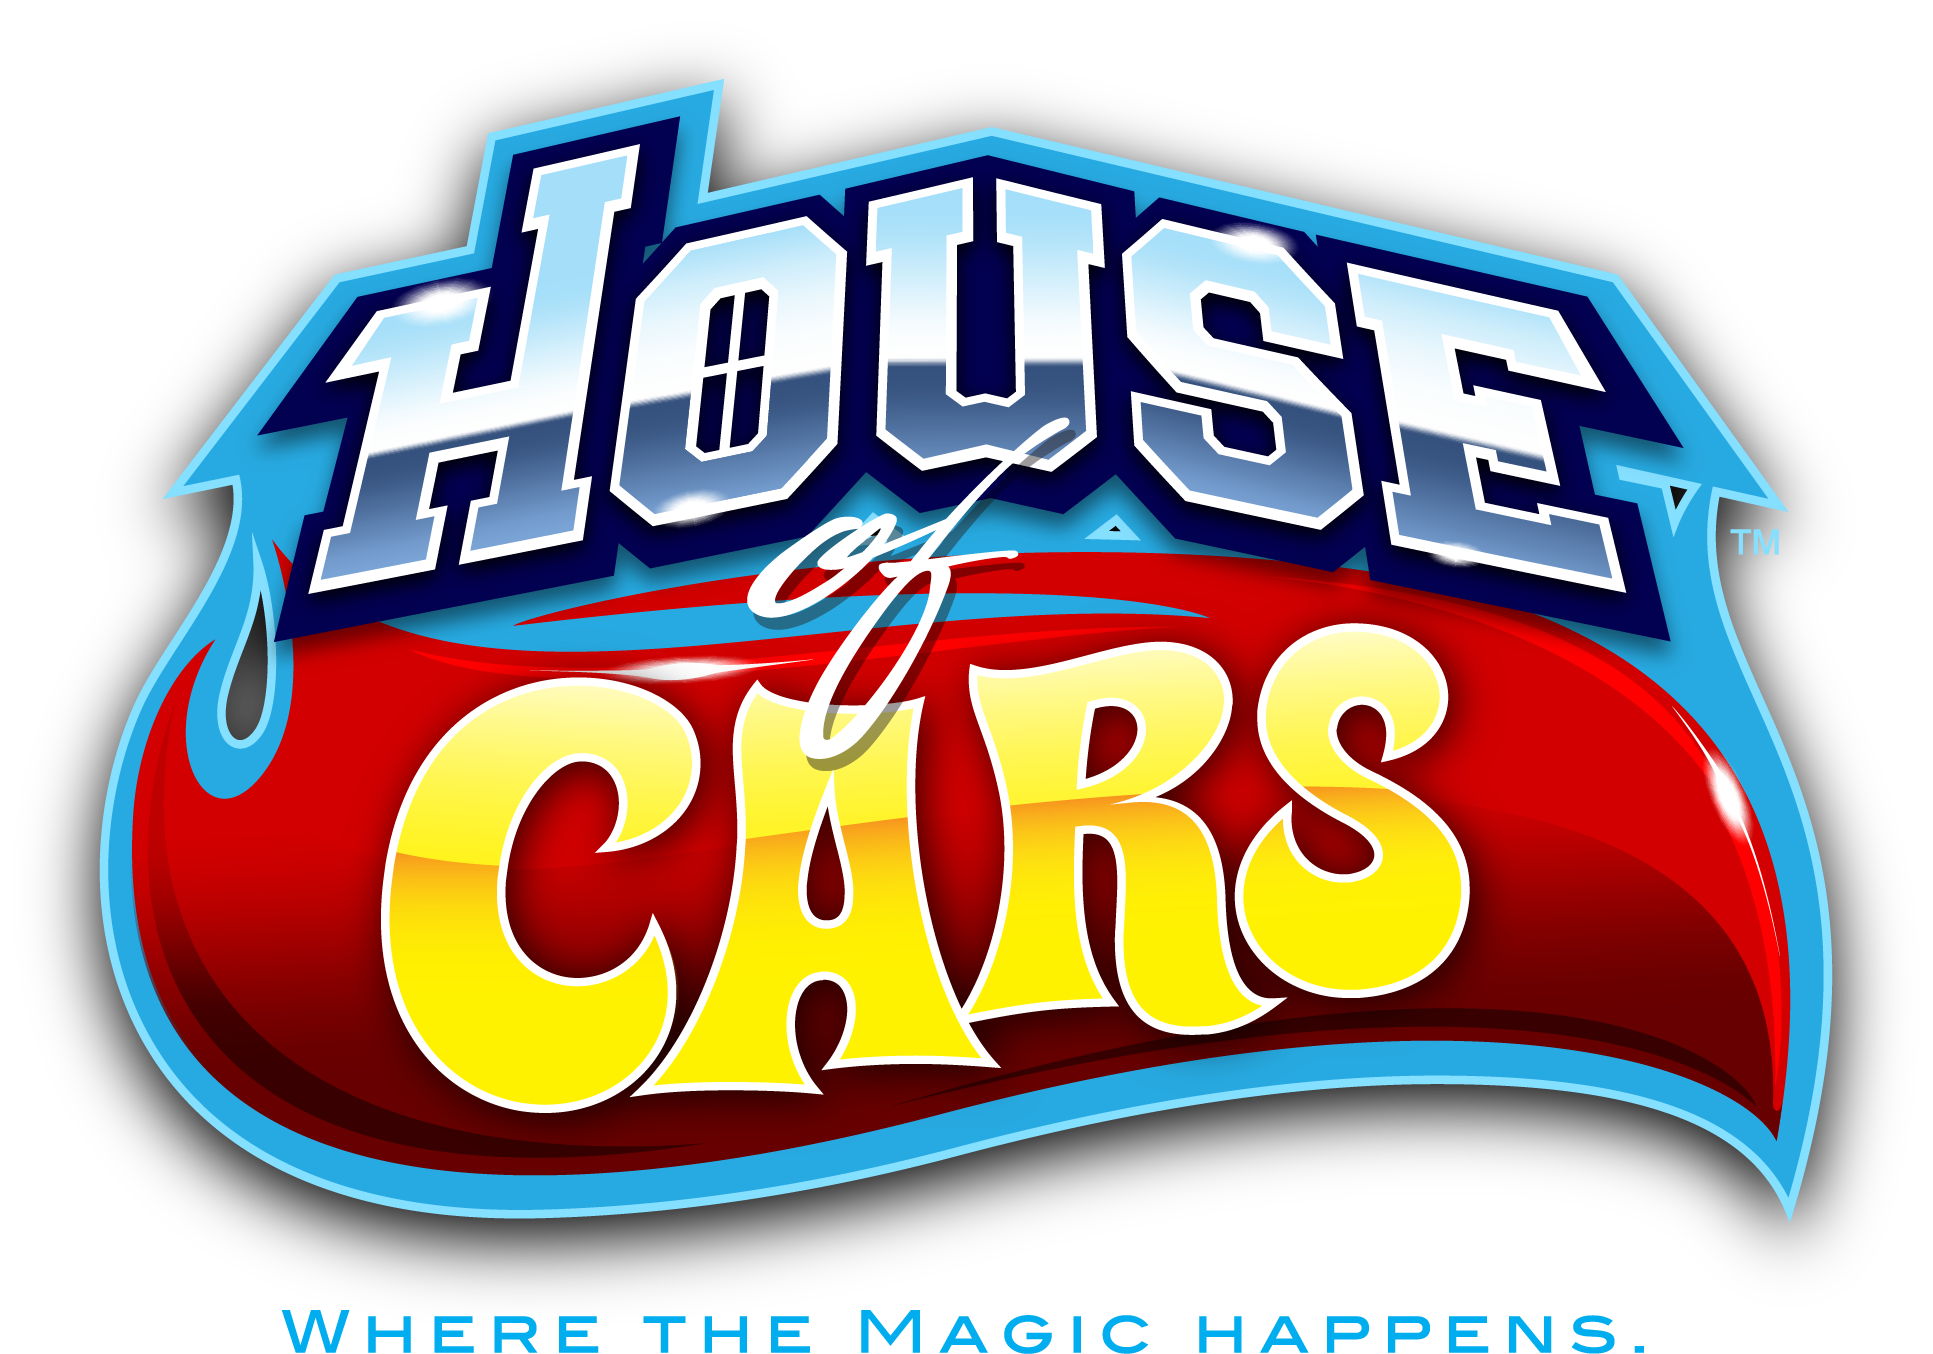 House of Cars